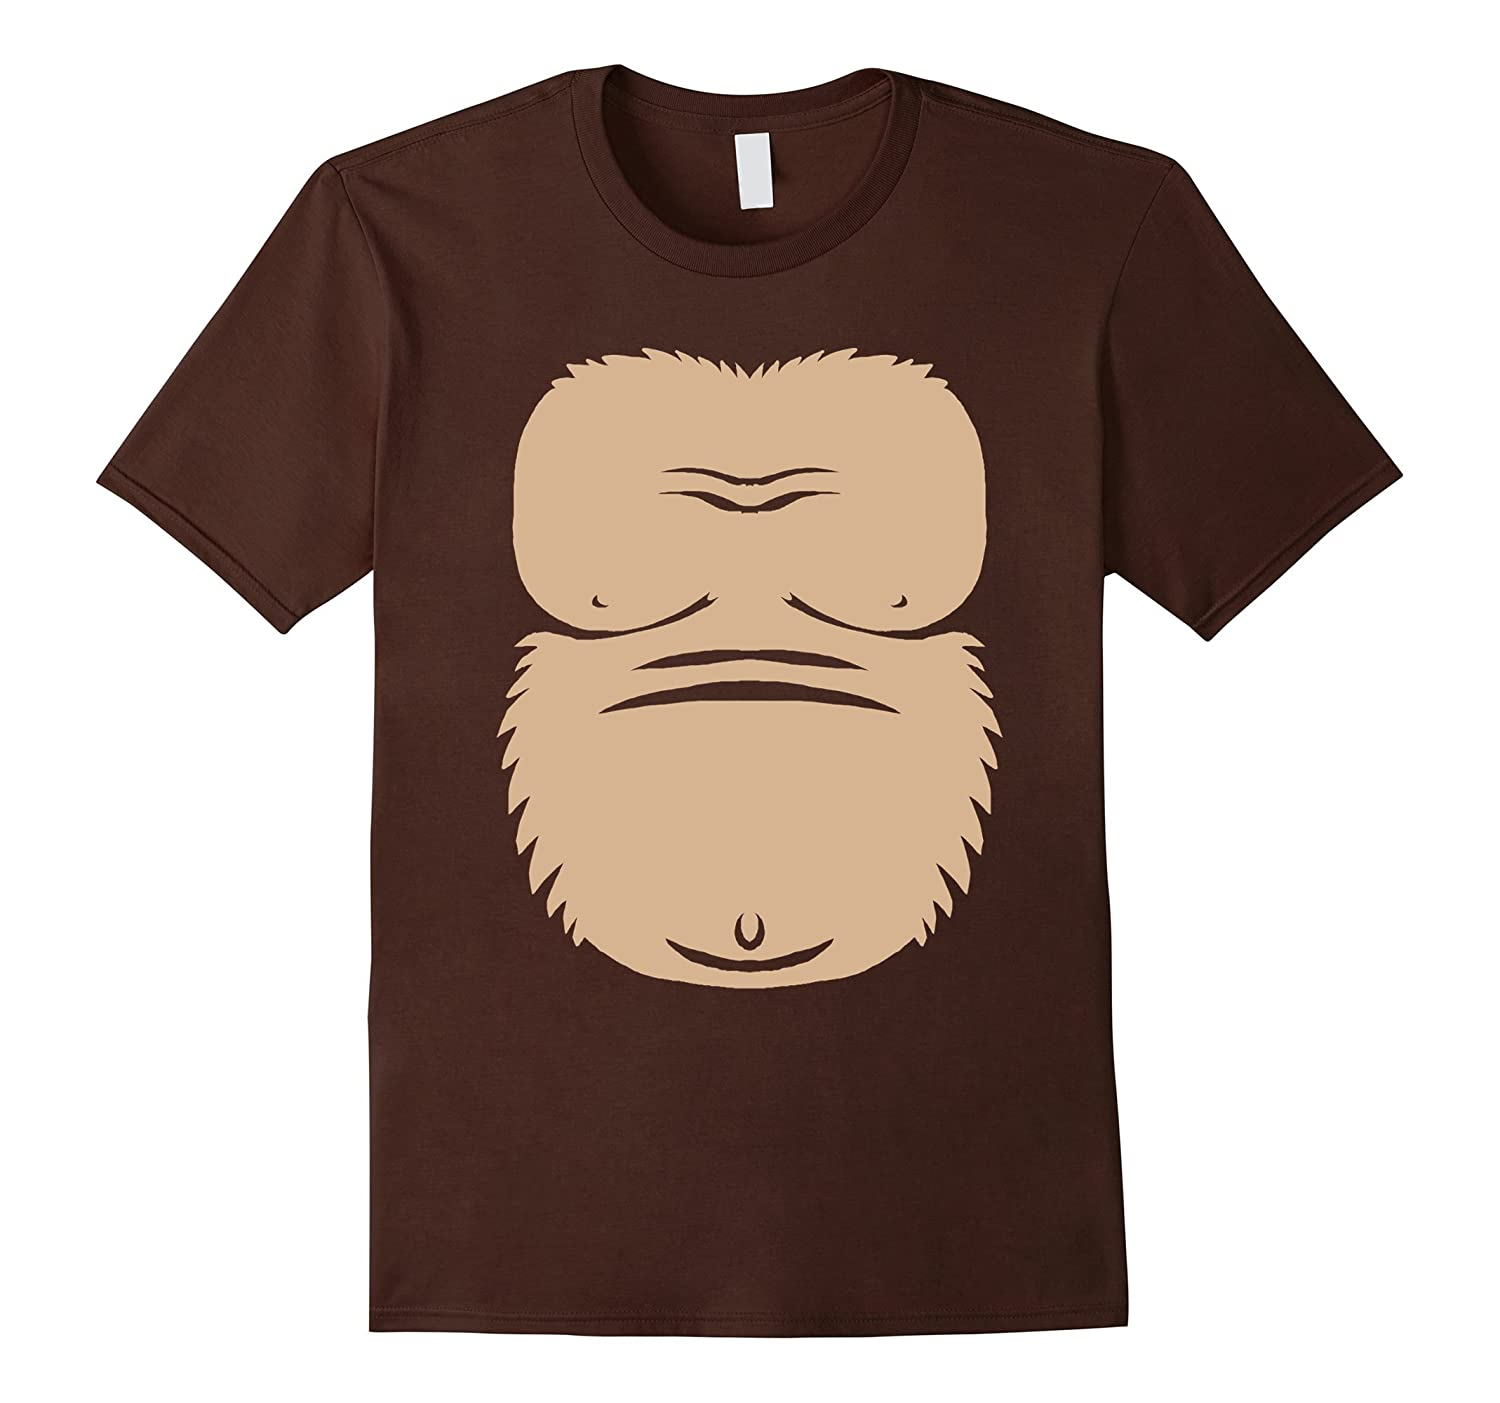 Gorilla Halloween Costume T Shirt Medium-Awarplus